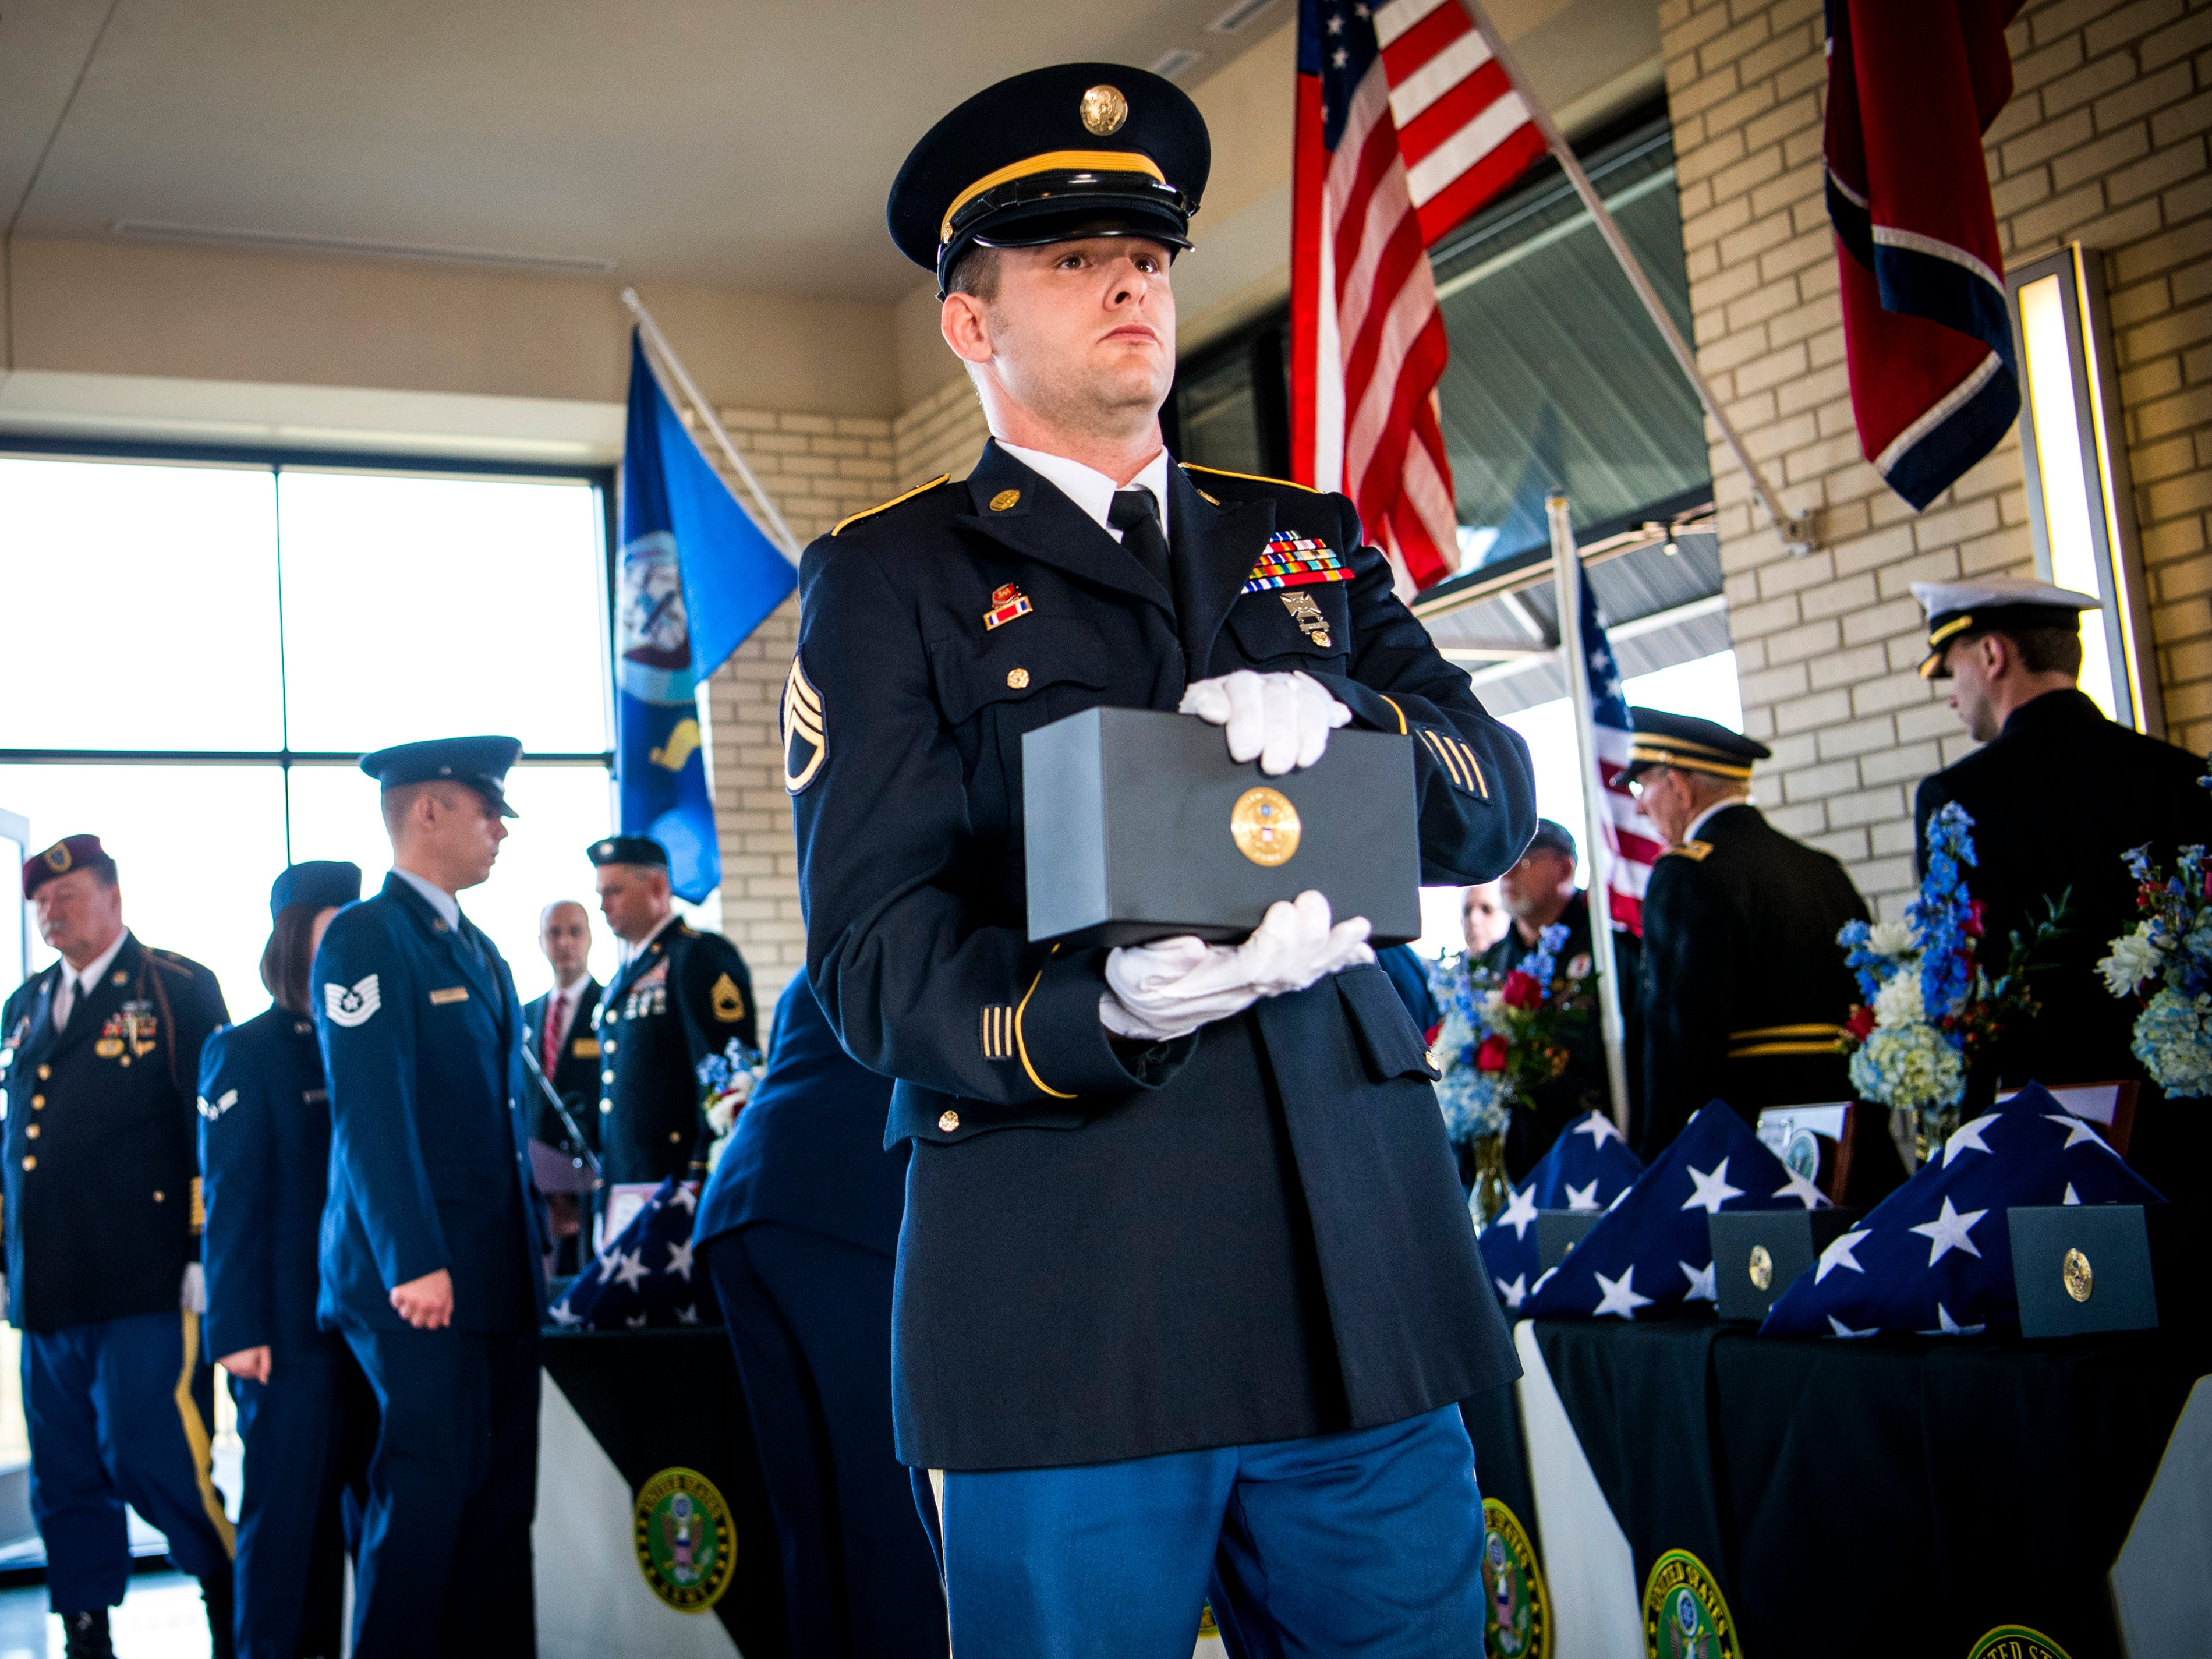 Urns are carried out to the gravesite during a military memorial service for seven East Tennessee veterans held at the East Tennessee Veterans Cemetery on Gov. John Sevier Highway on Tuesday, February 5, 2019.